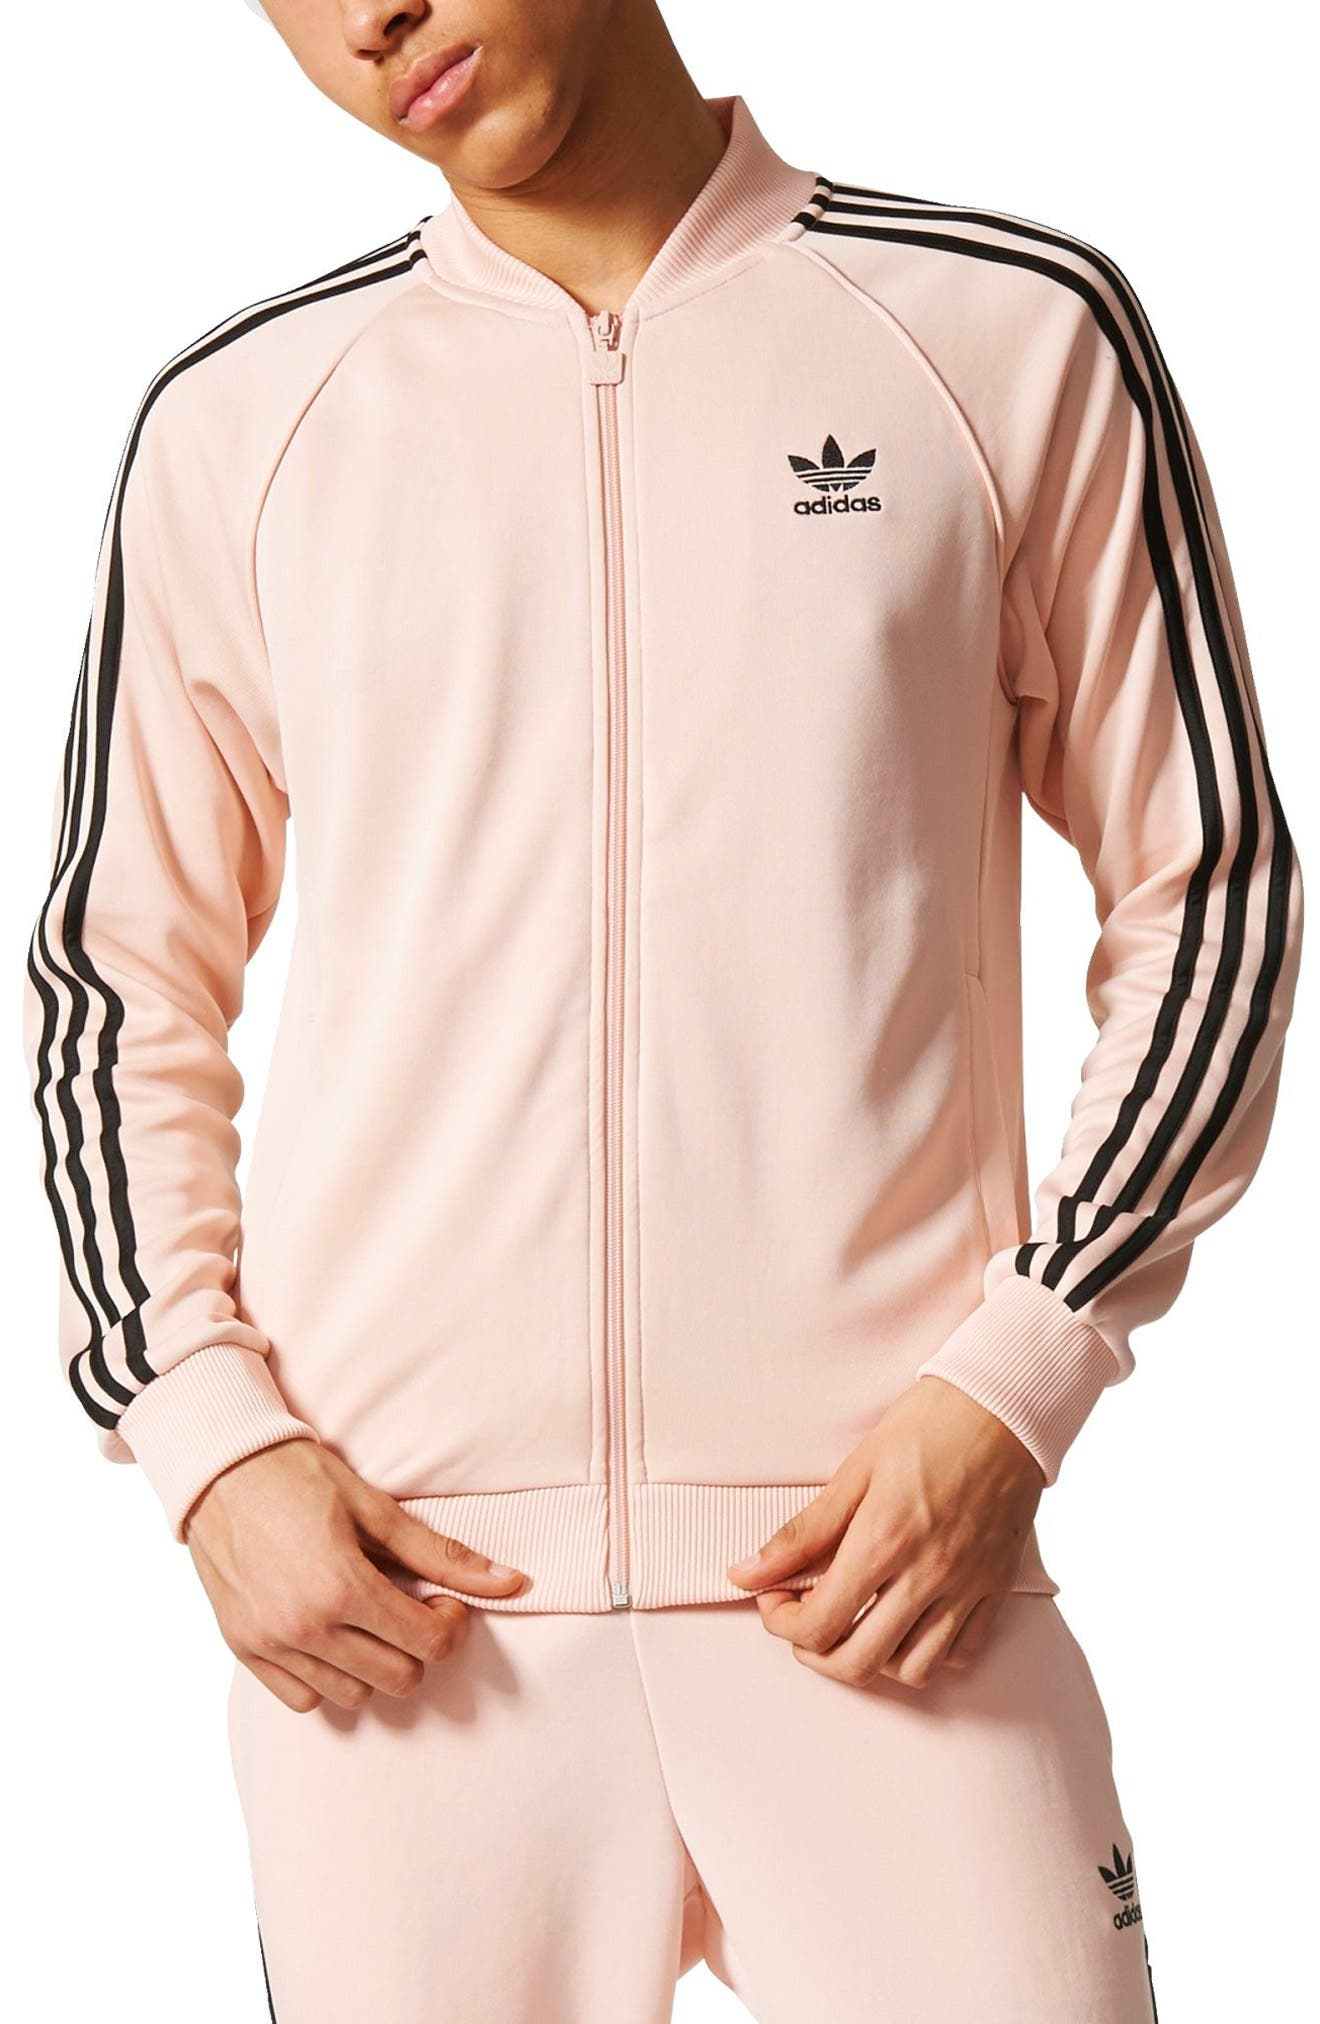 adidas Originals 'Superstar' Track Jacket